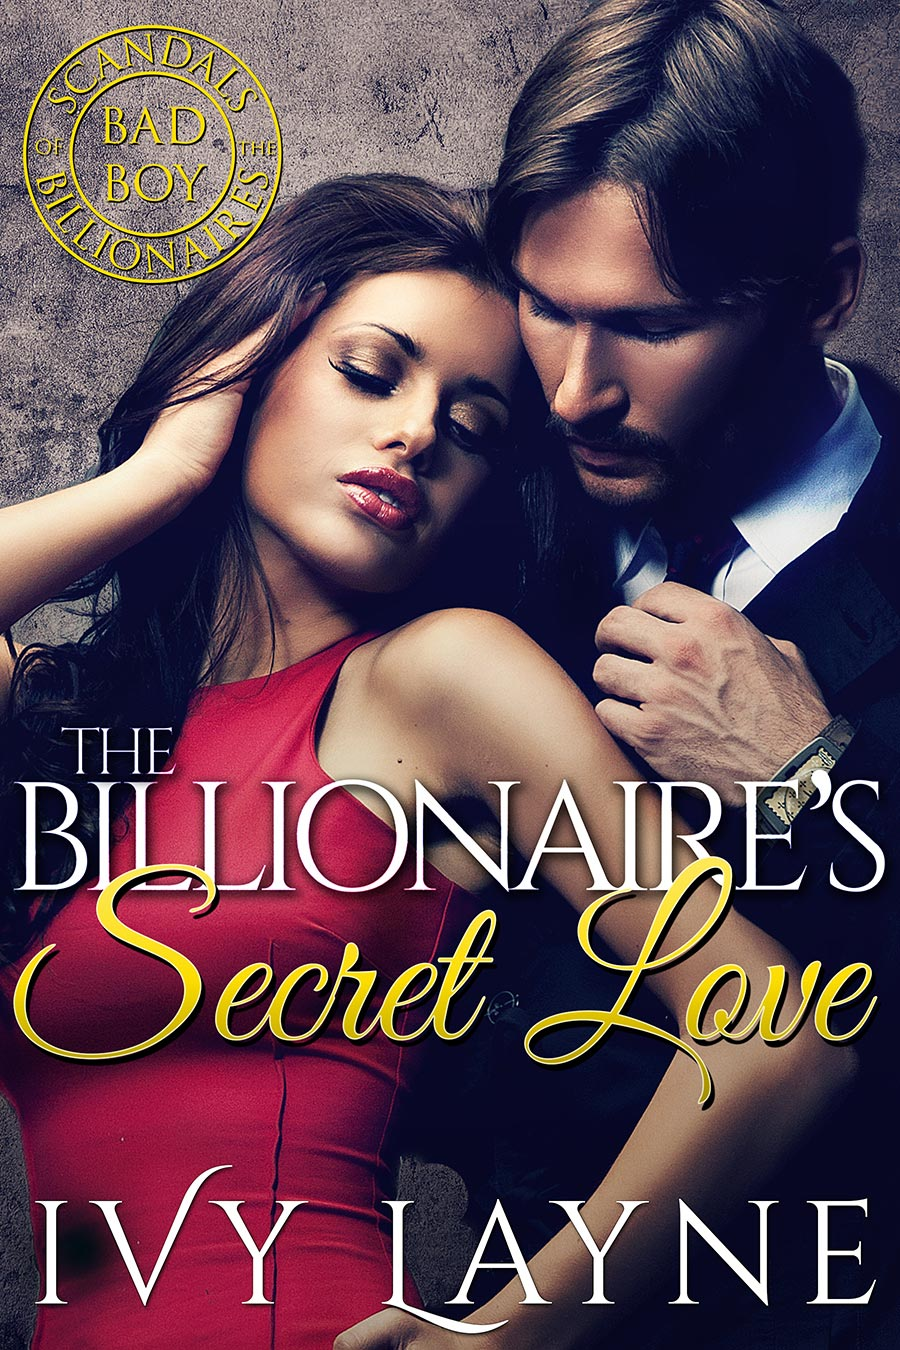 The-Billionaires-Secret-Love---Ivy-Layne---for-chris.jpg